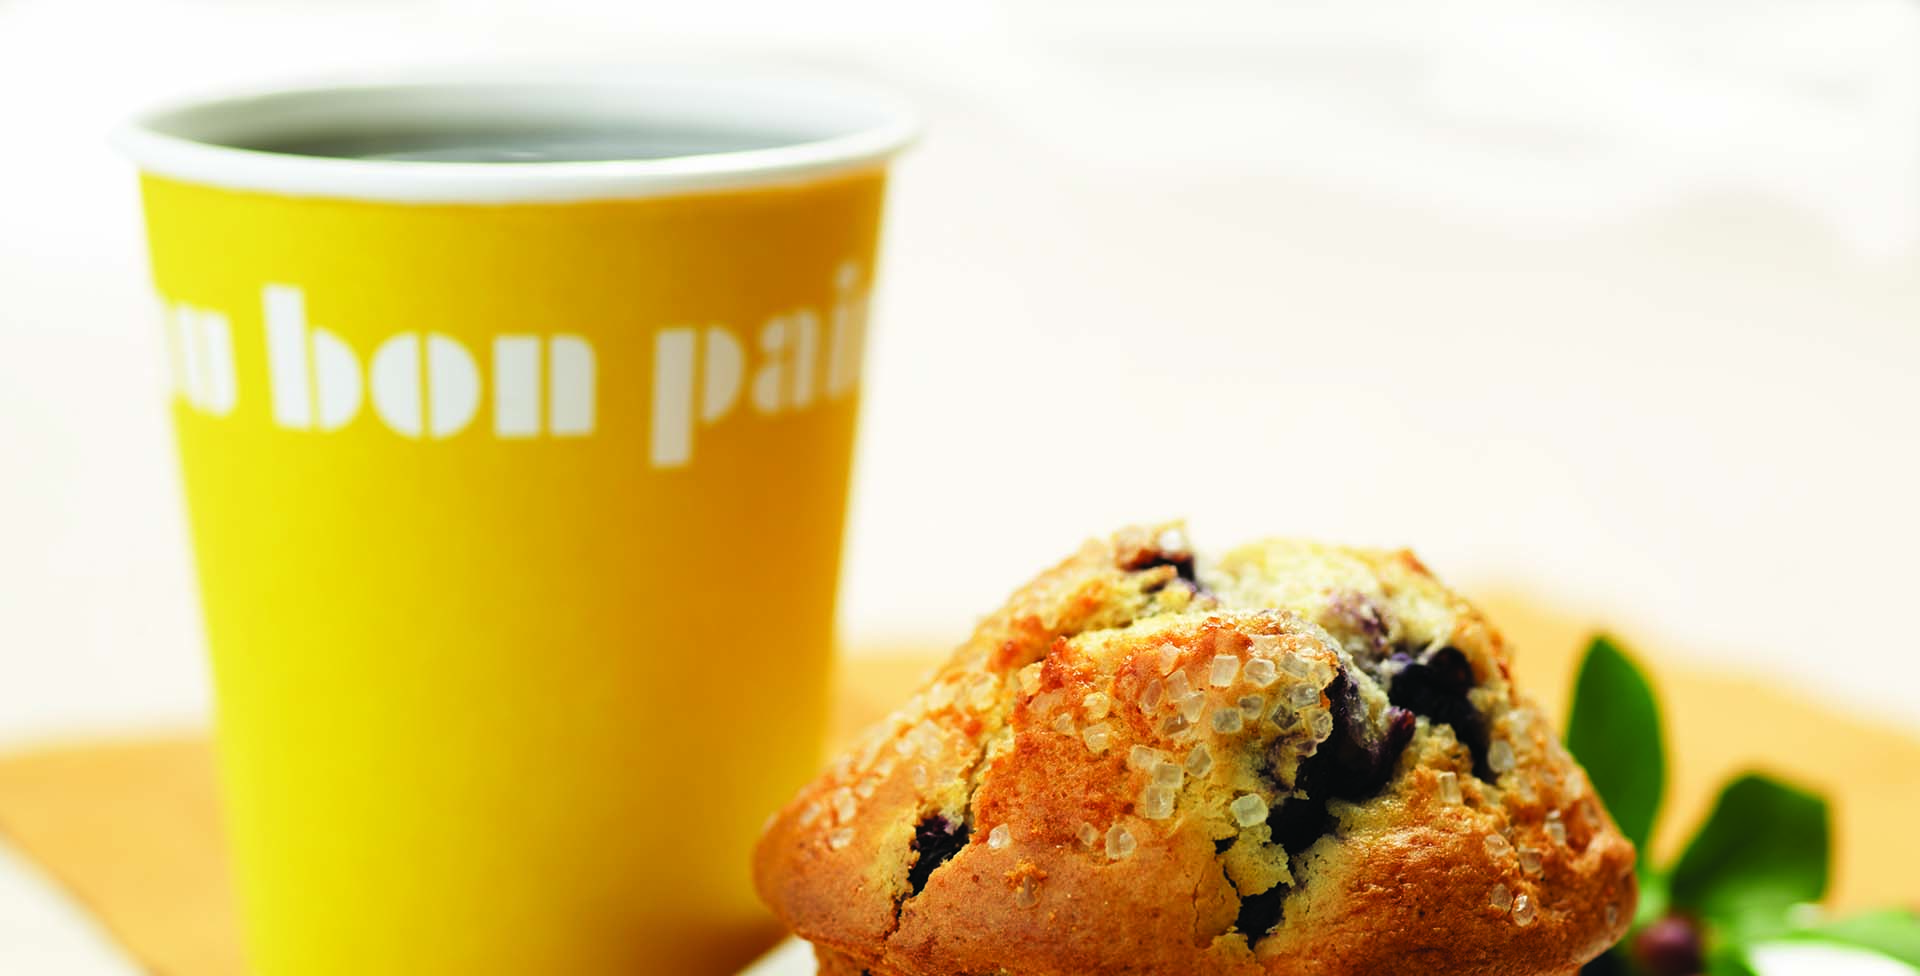 AU BON PAIN Muffin and Coffee